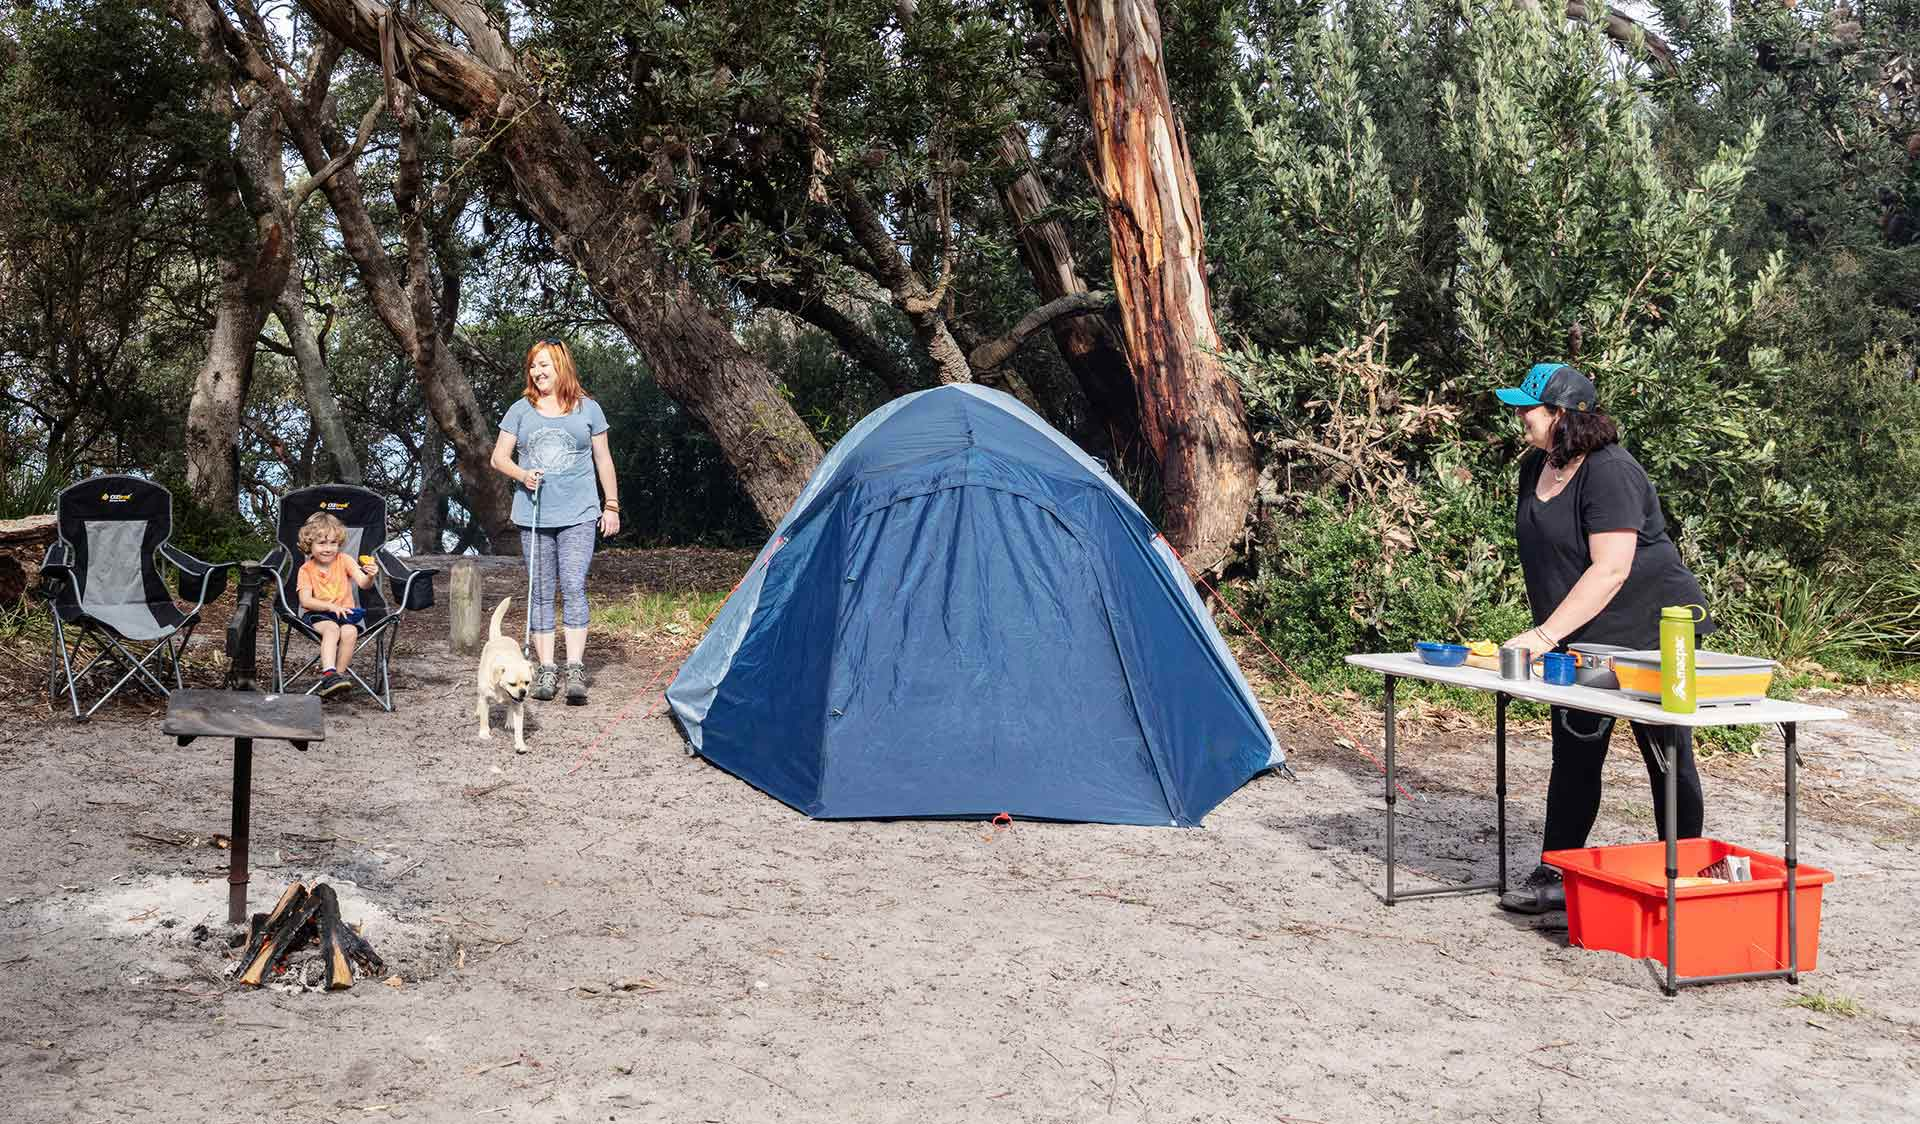 A women walks her dog into the campsite while another women prepares food as her son looks on.